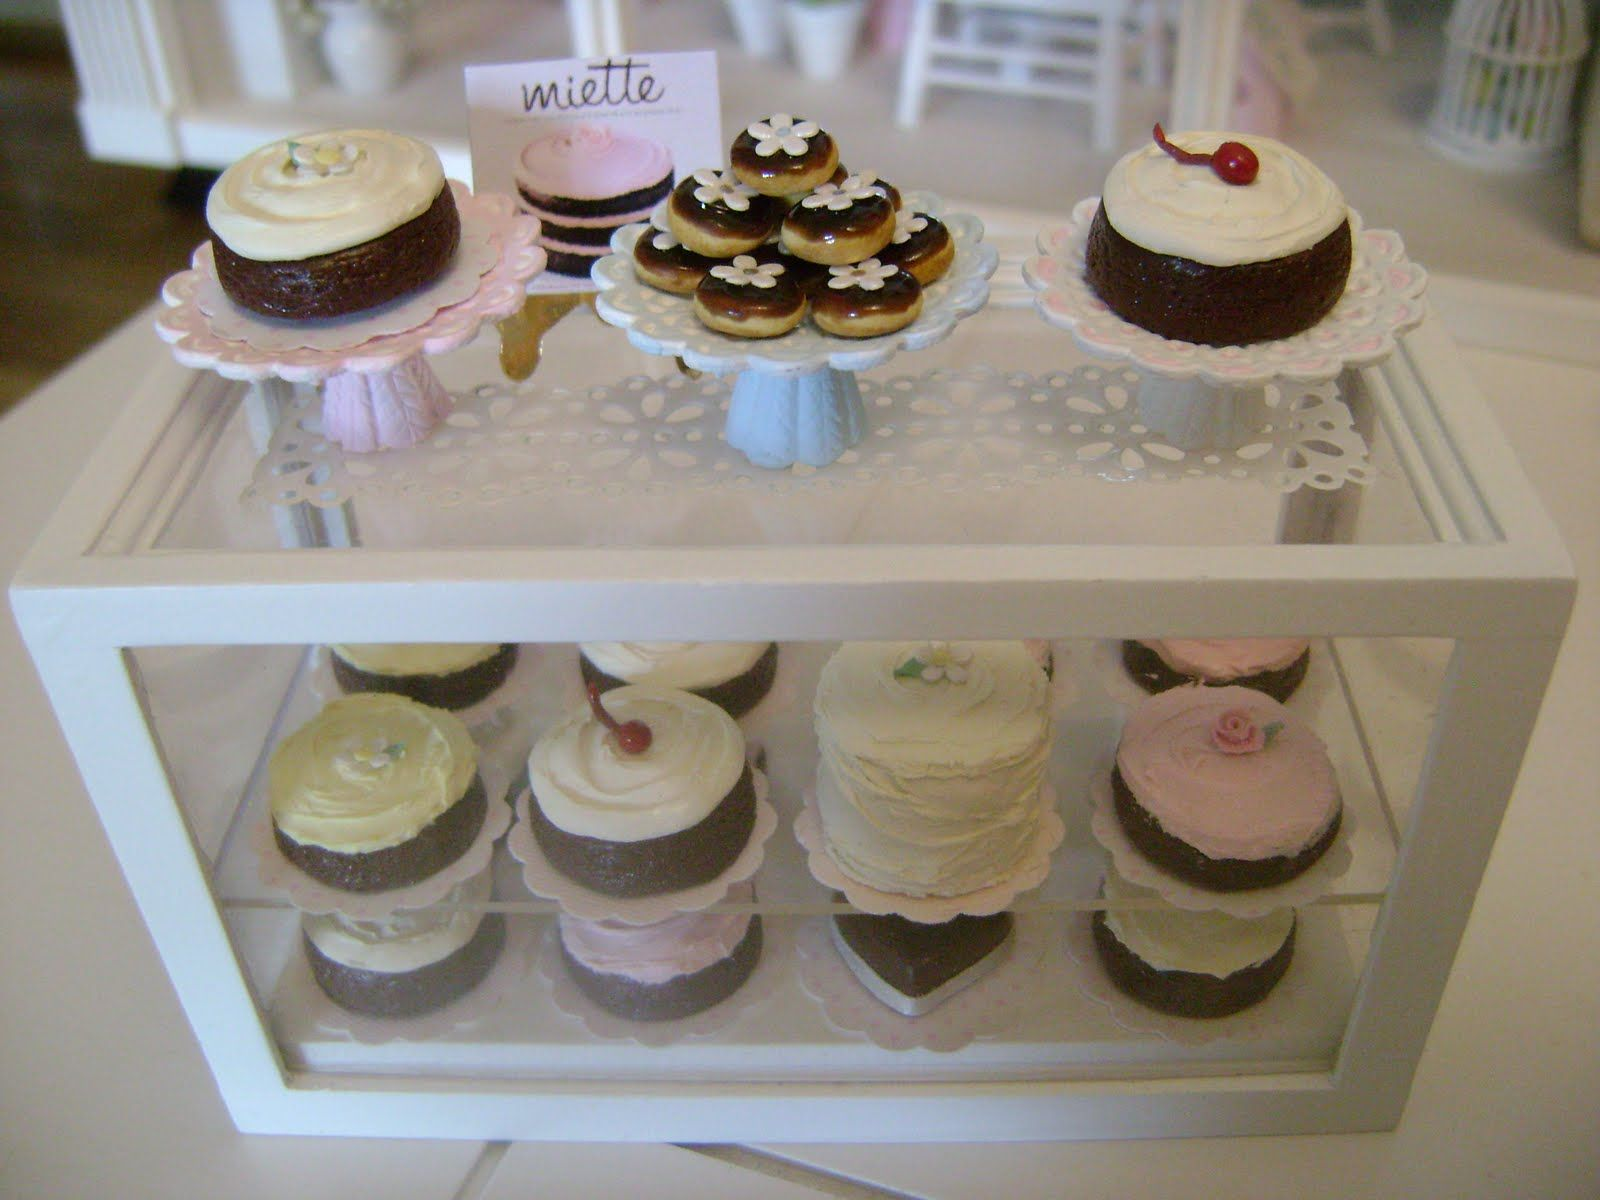 cute idea for mini cakes on display